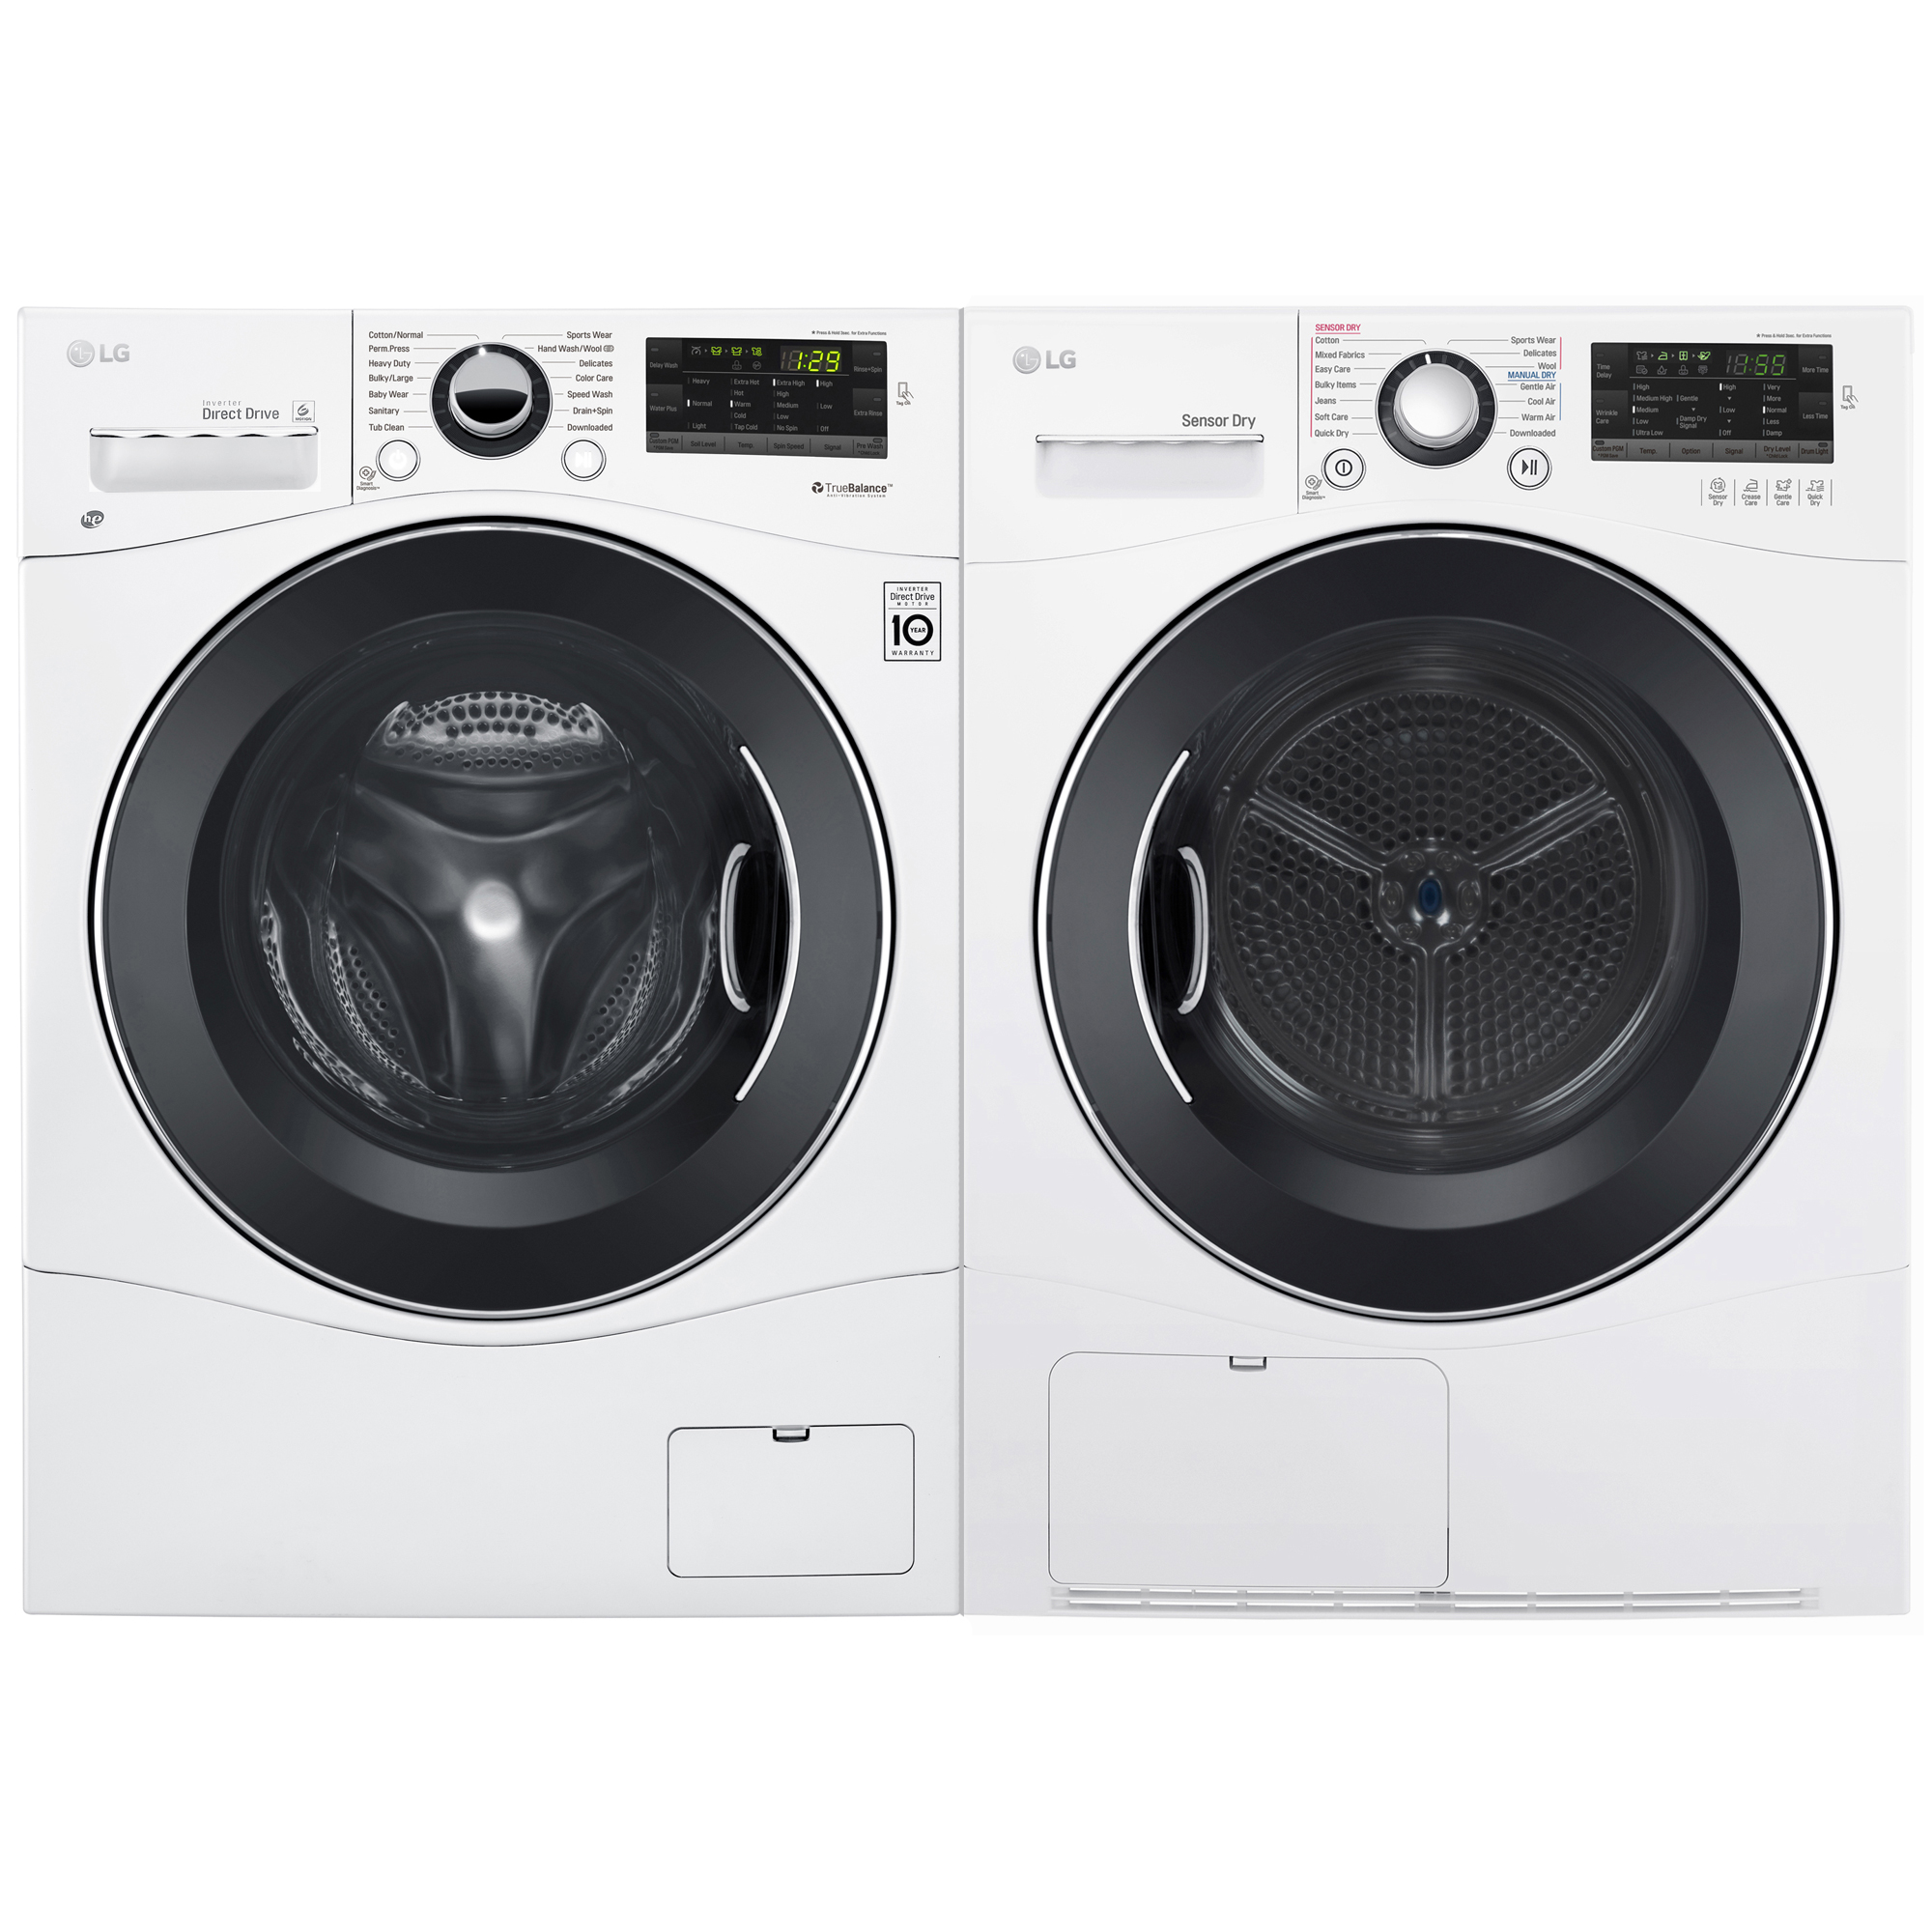 2.2 cu. ft. Compact Front Load Washer & 4.2 cu. ft. Electric Condensing Dryer Bundle - White